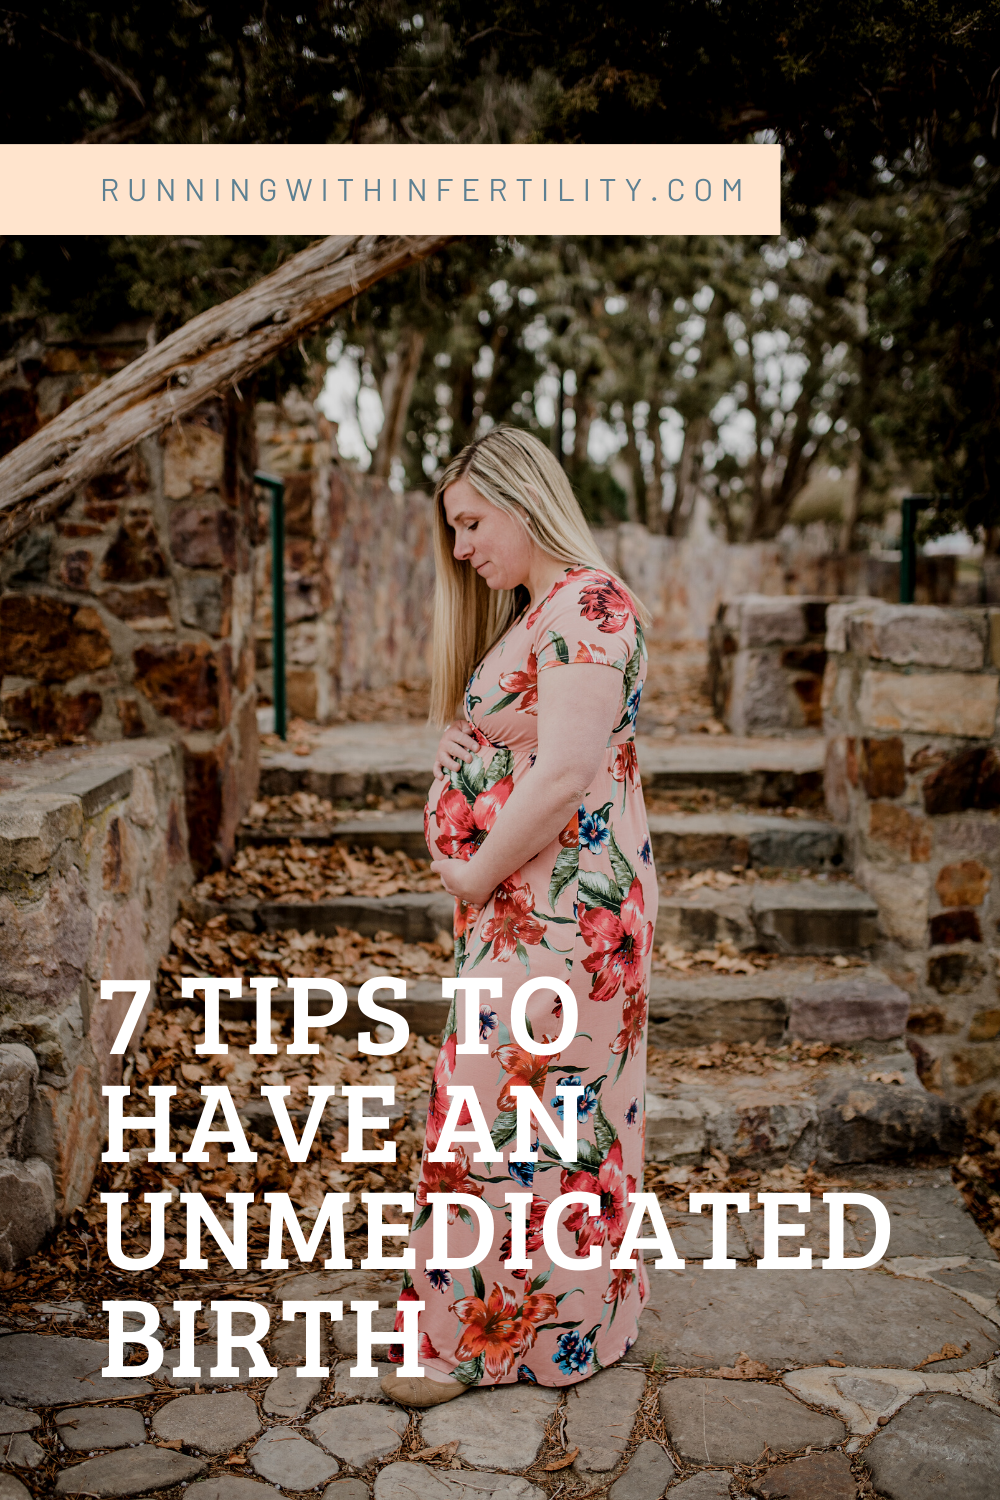 7 tips to have an unmedicated birth after infertility